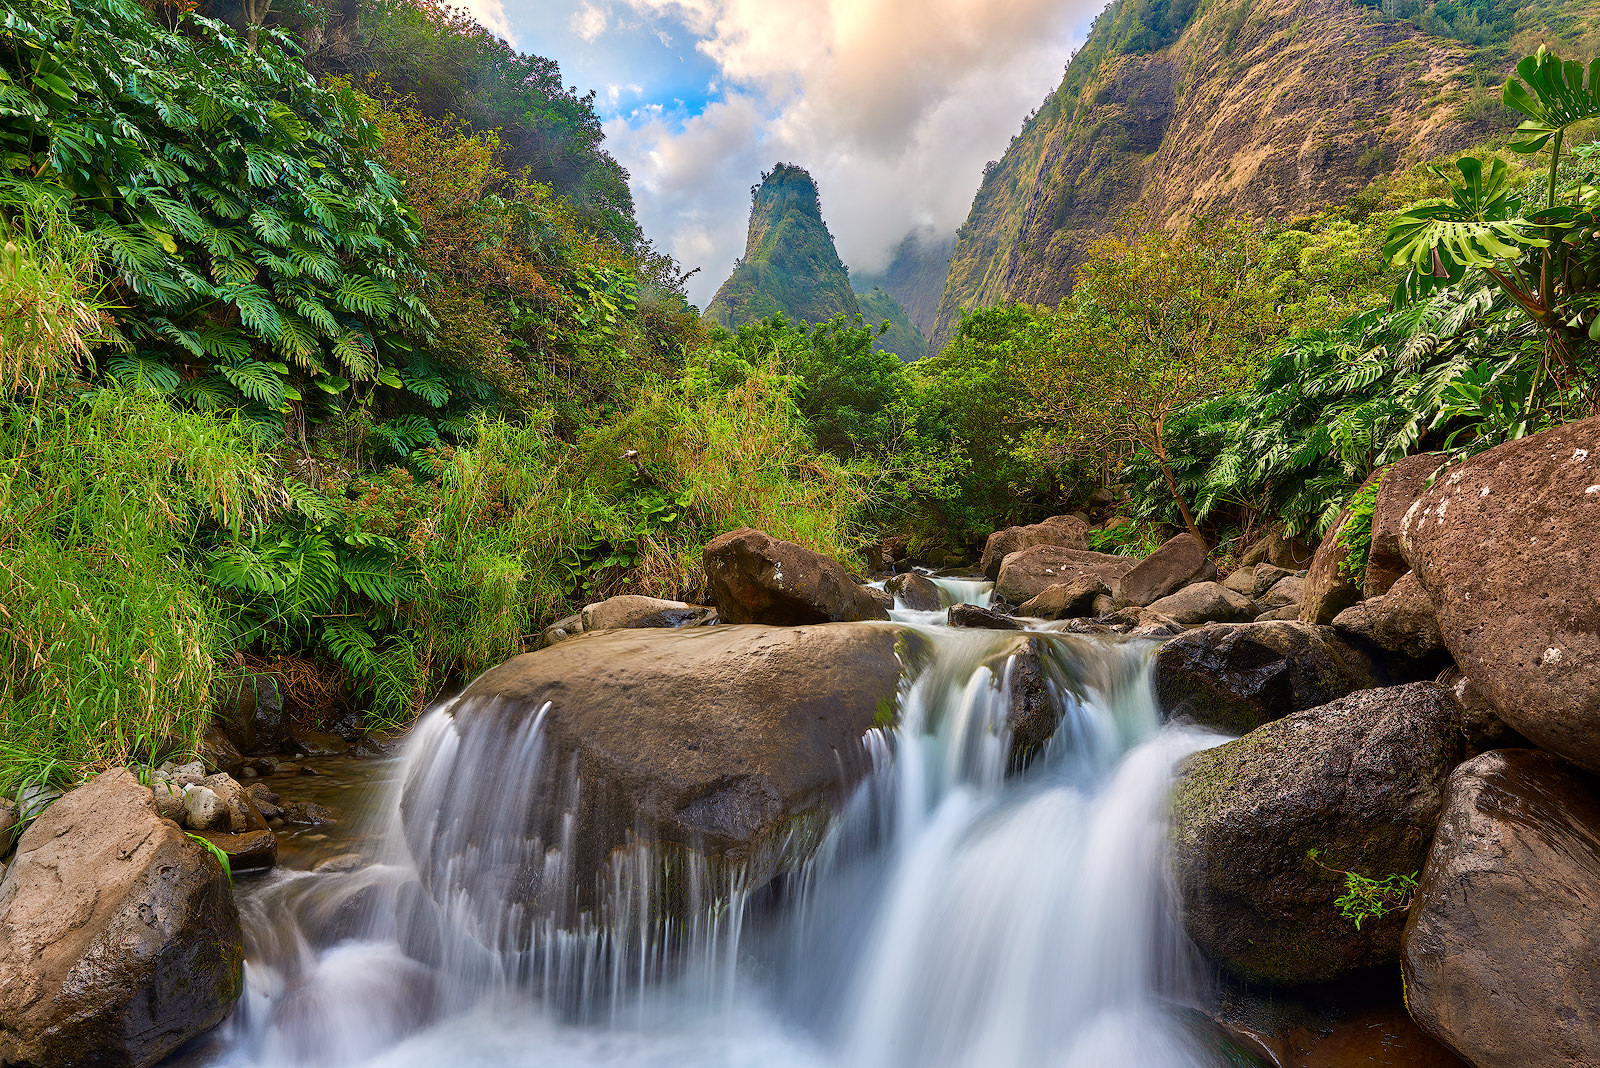 a waterfall flows over the rocks at Iao Valley State Park with the Iao Needle iconically in the background of the lush forest.  Hawaii Photography